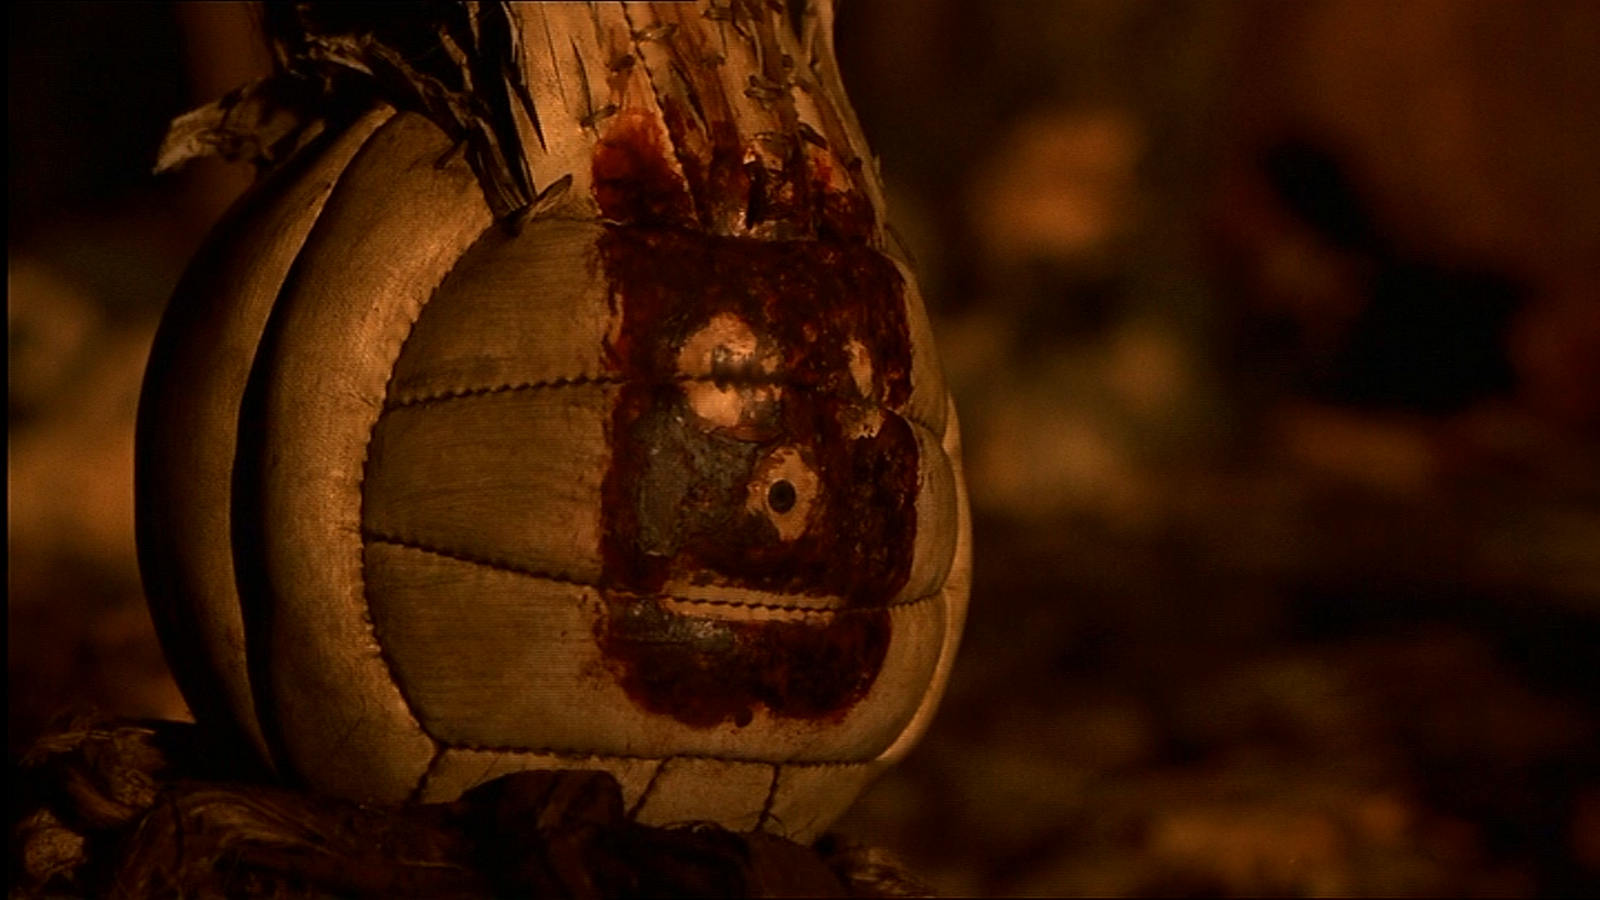 Wilson from Cast Away